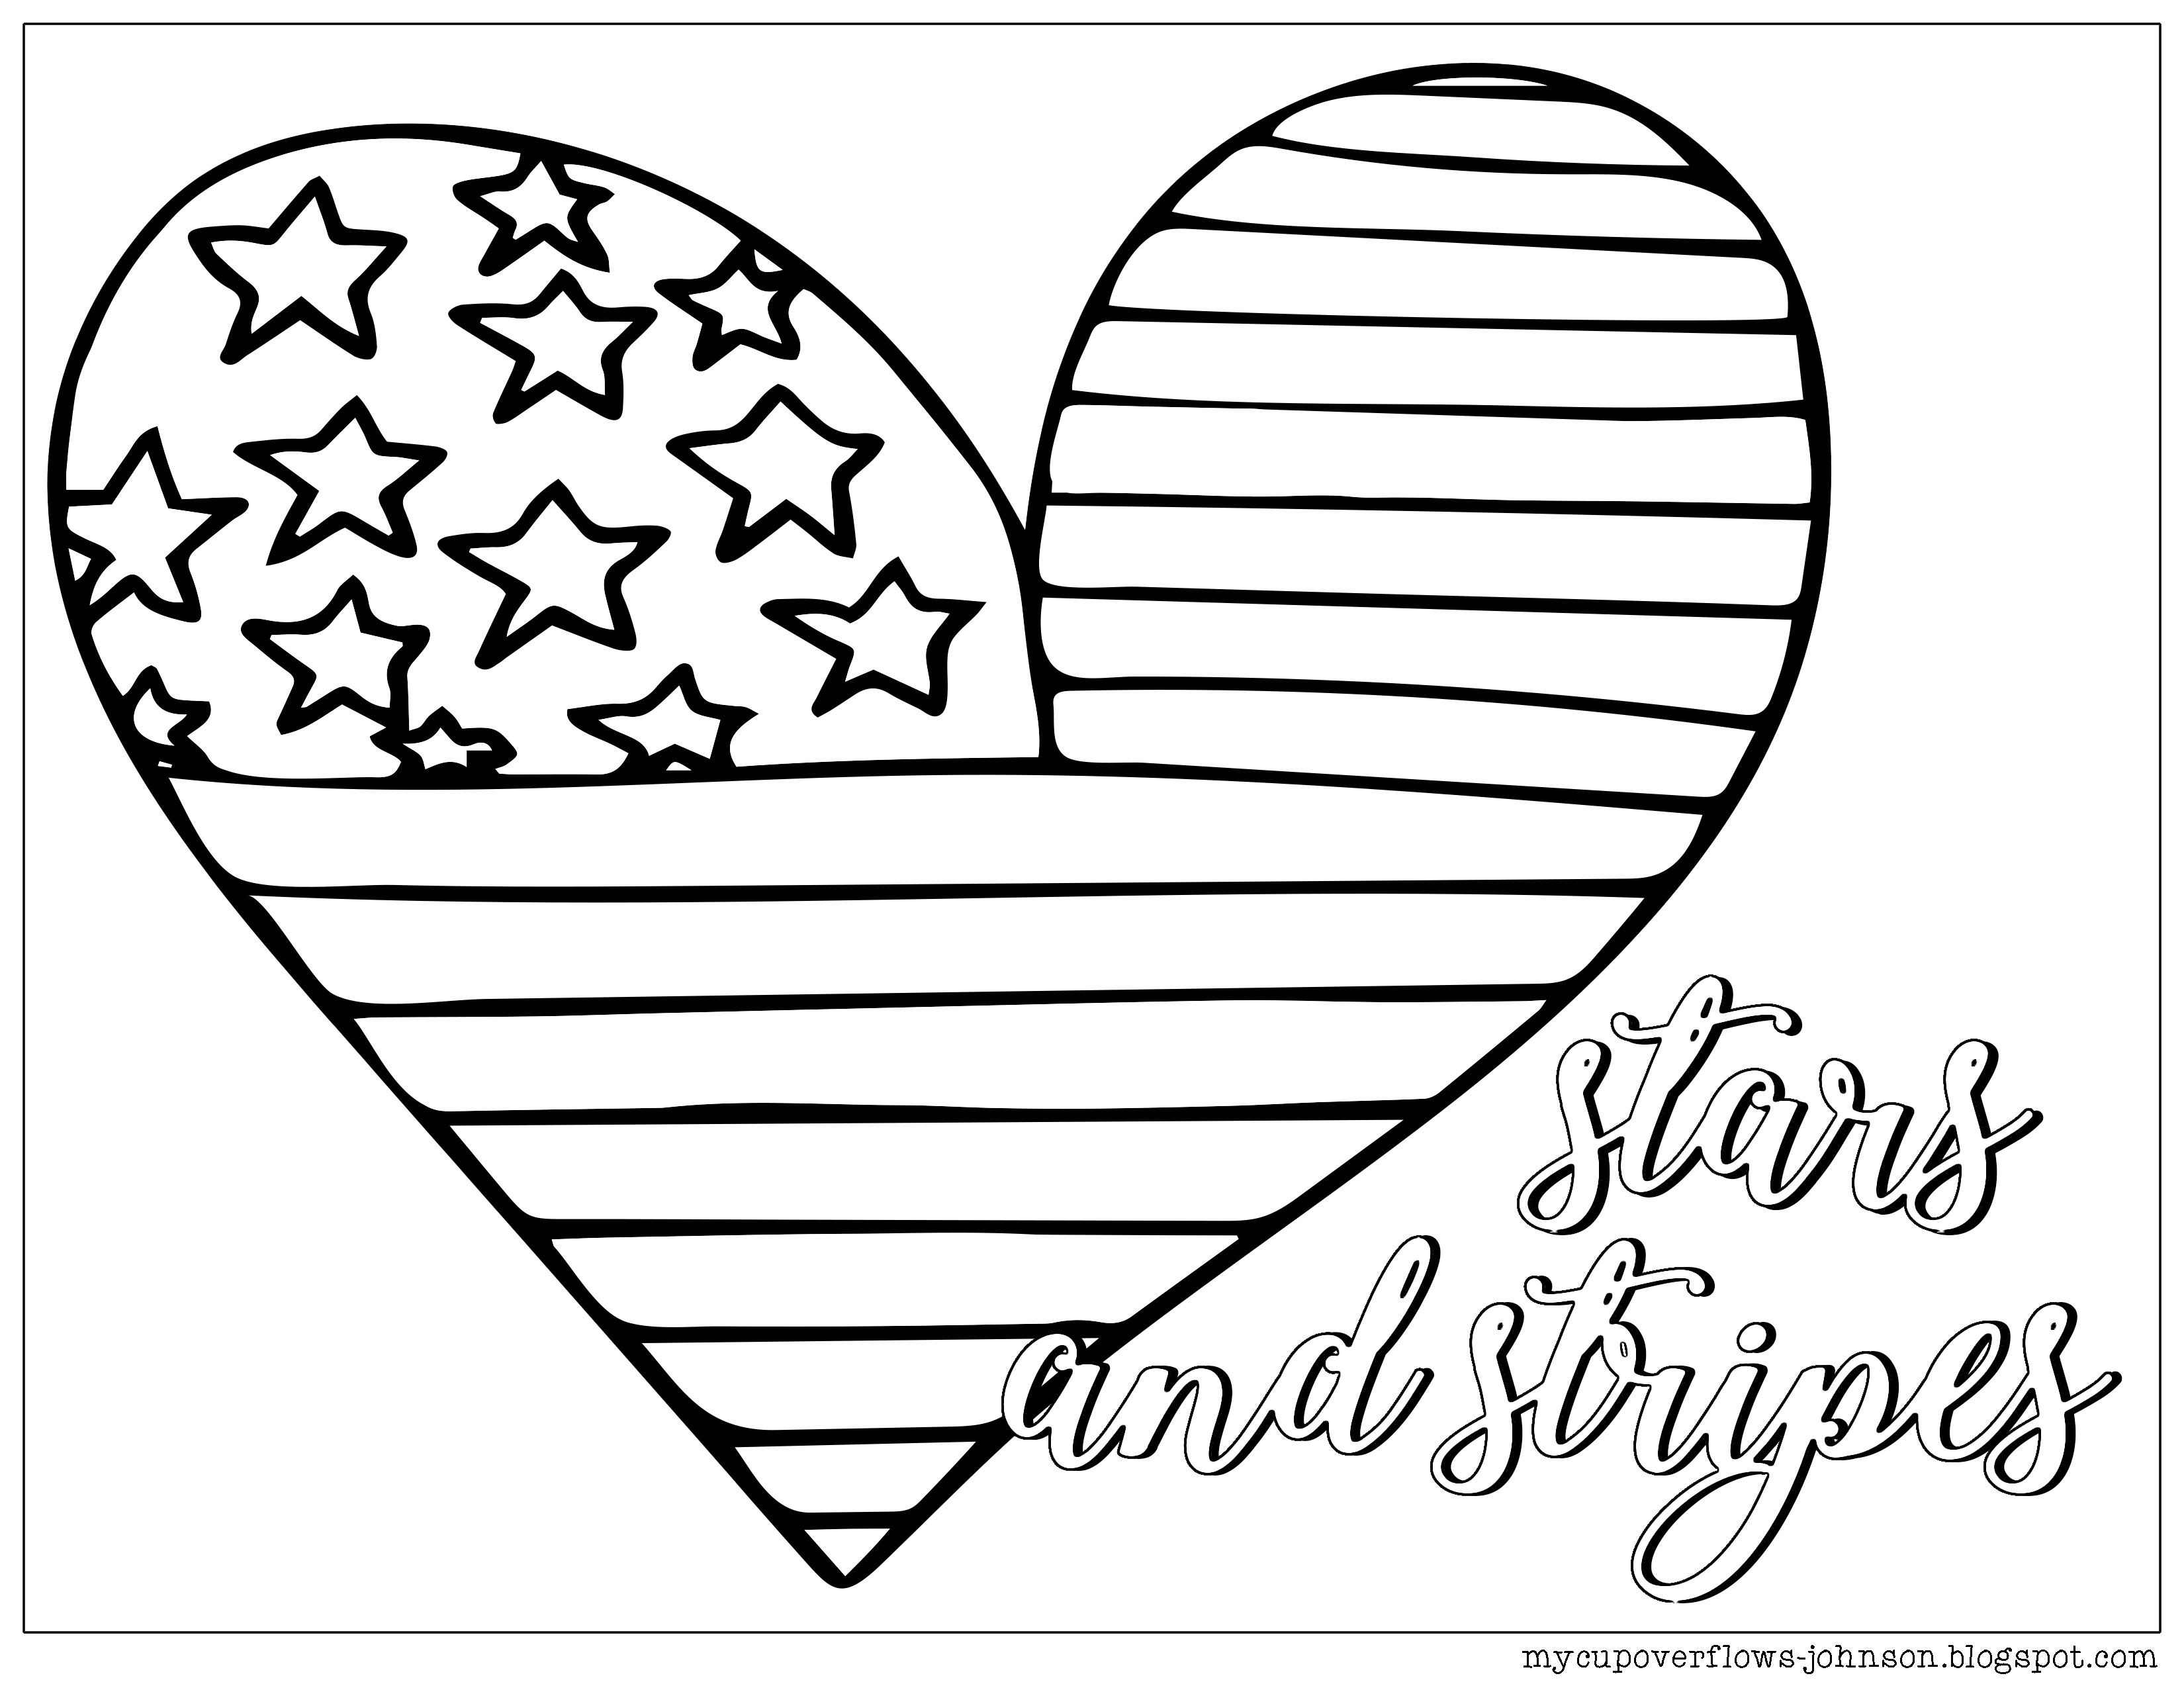 Coloring Pages For The 4th Of July Coloring Pages Heart Coloring Pages Memorial Day Coloring Pages